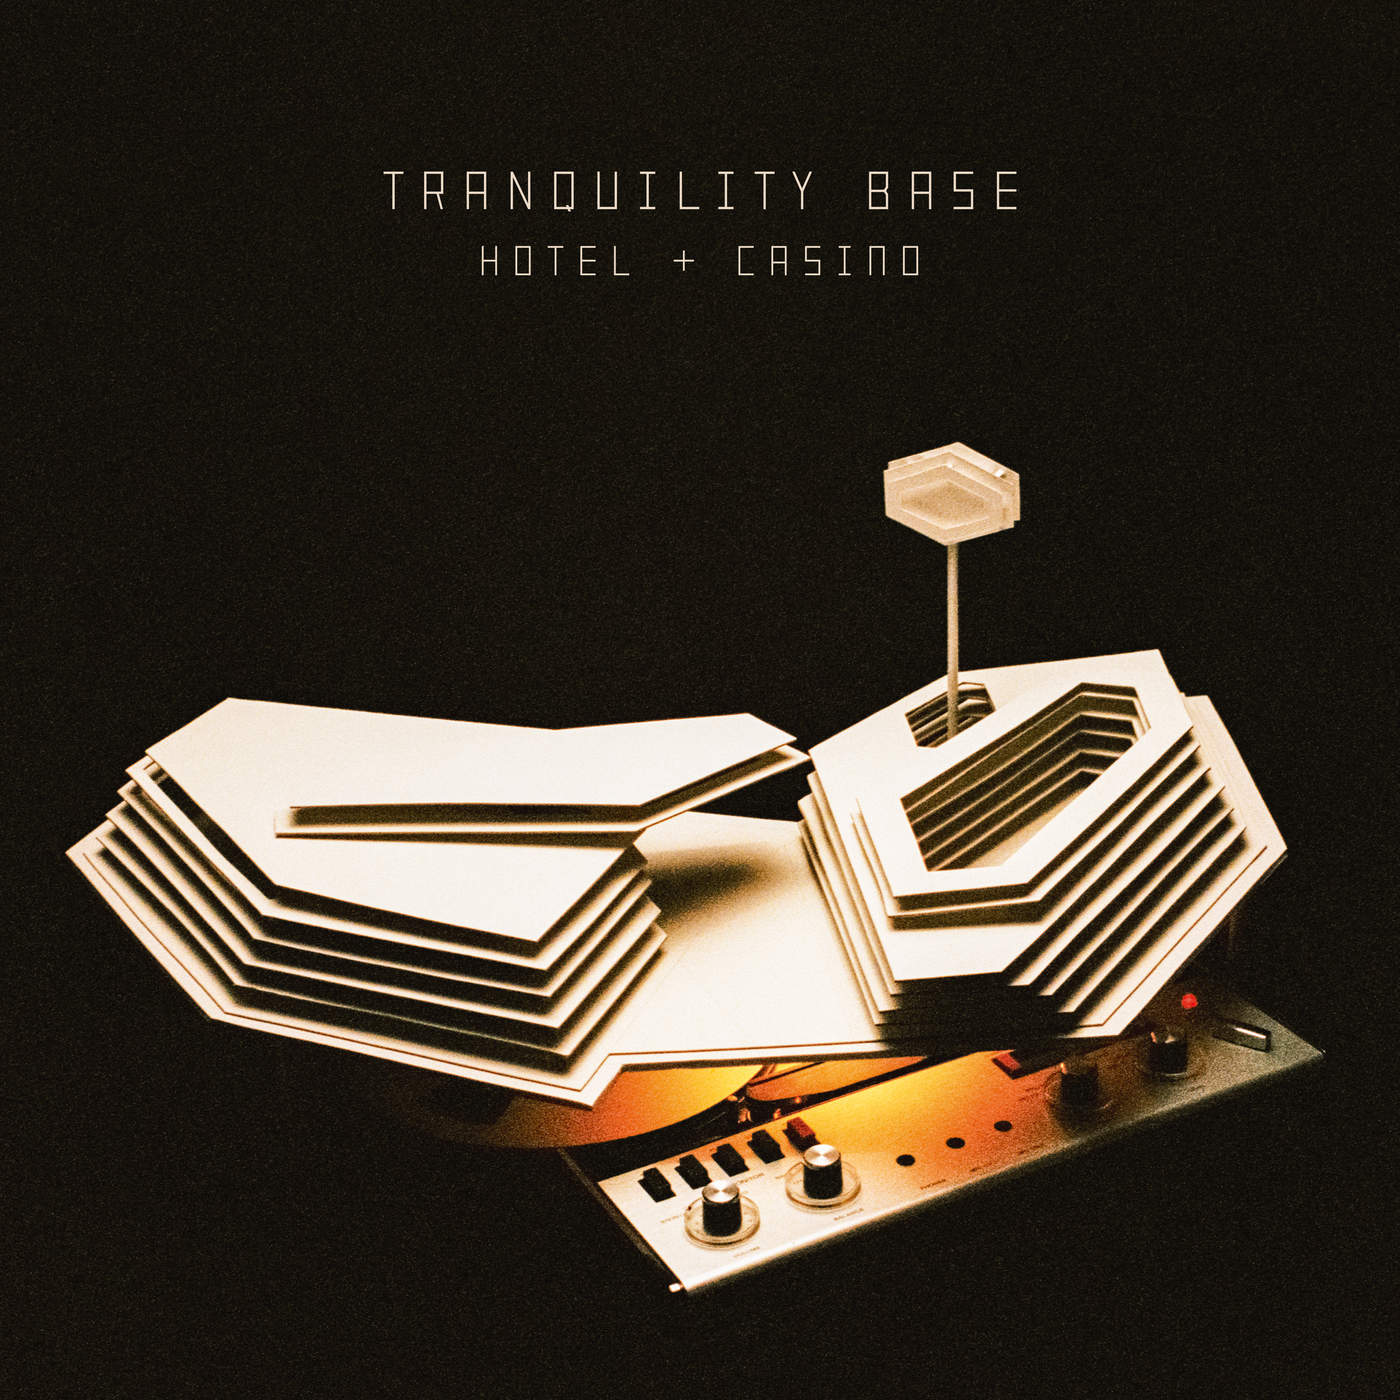 Tranquility Base Hotel & Casino  by Arctic Monkeys (Image retrieved from iTunes-purchased MP3 file)